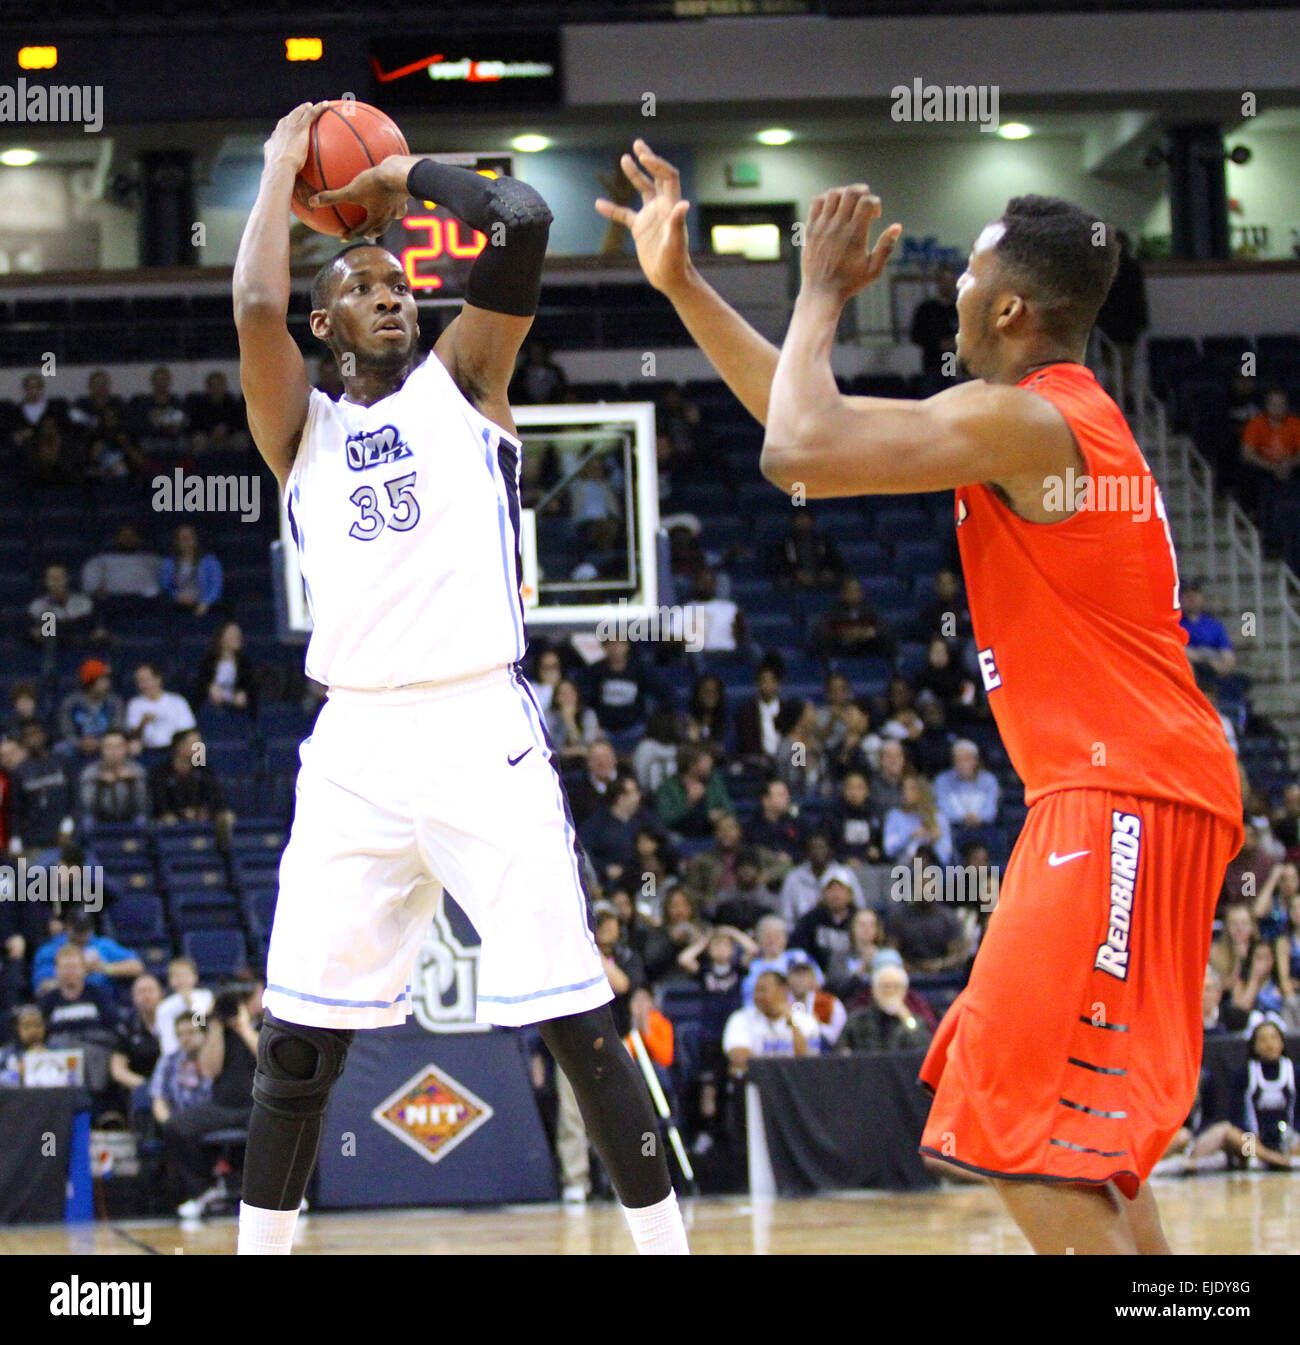 Norfolk, VA., USA. 23rd March, 2015. NCAA Basketball 2015: Old Dominion Monarchs center Jonathan Arledge (35) shoots - Stock Image